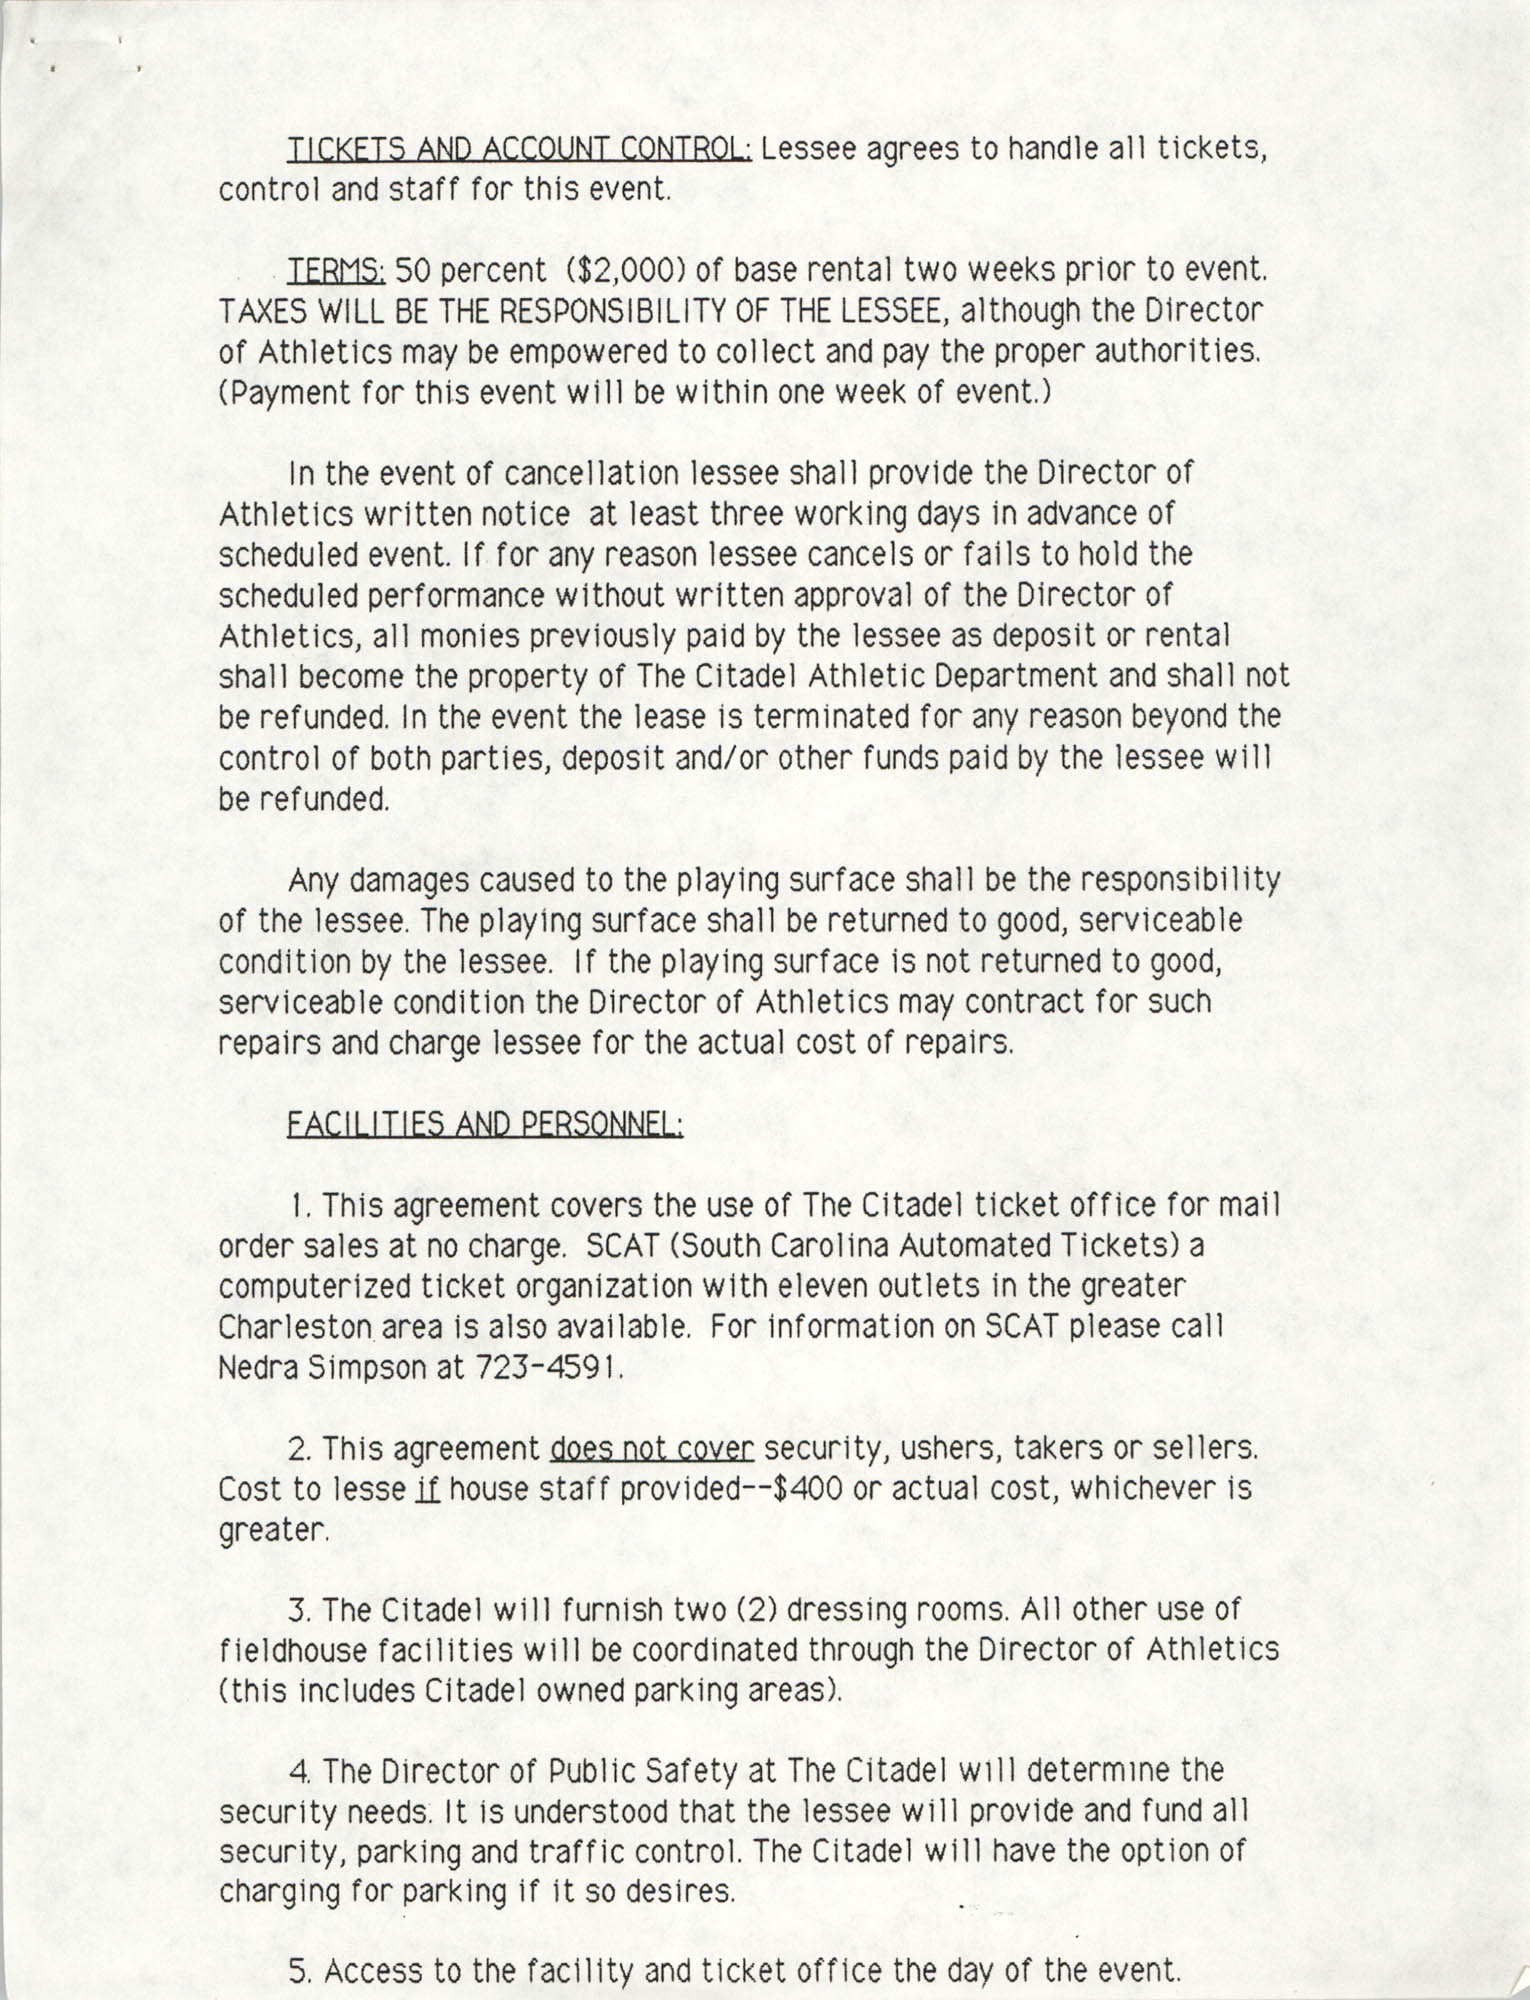 The Citadel Use of Facility Agreement, Page 2